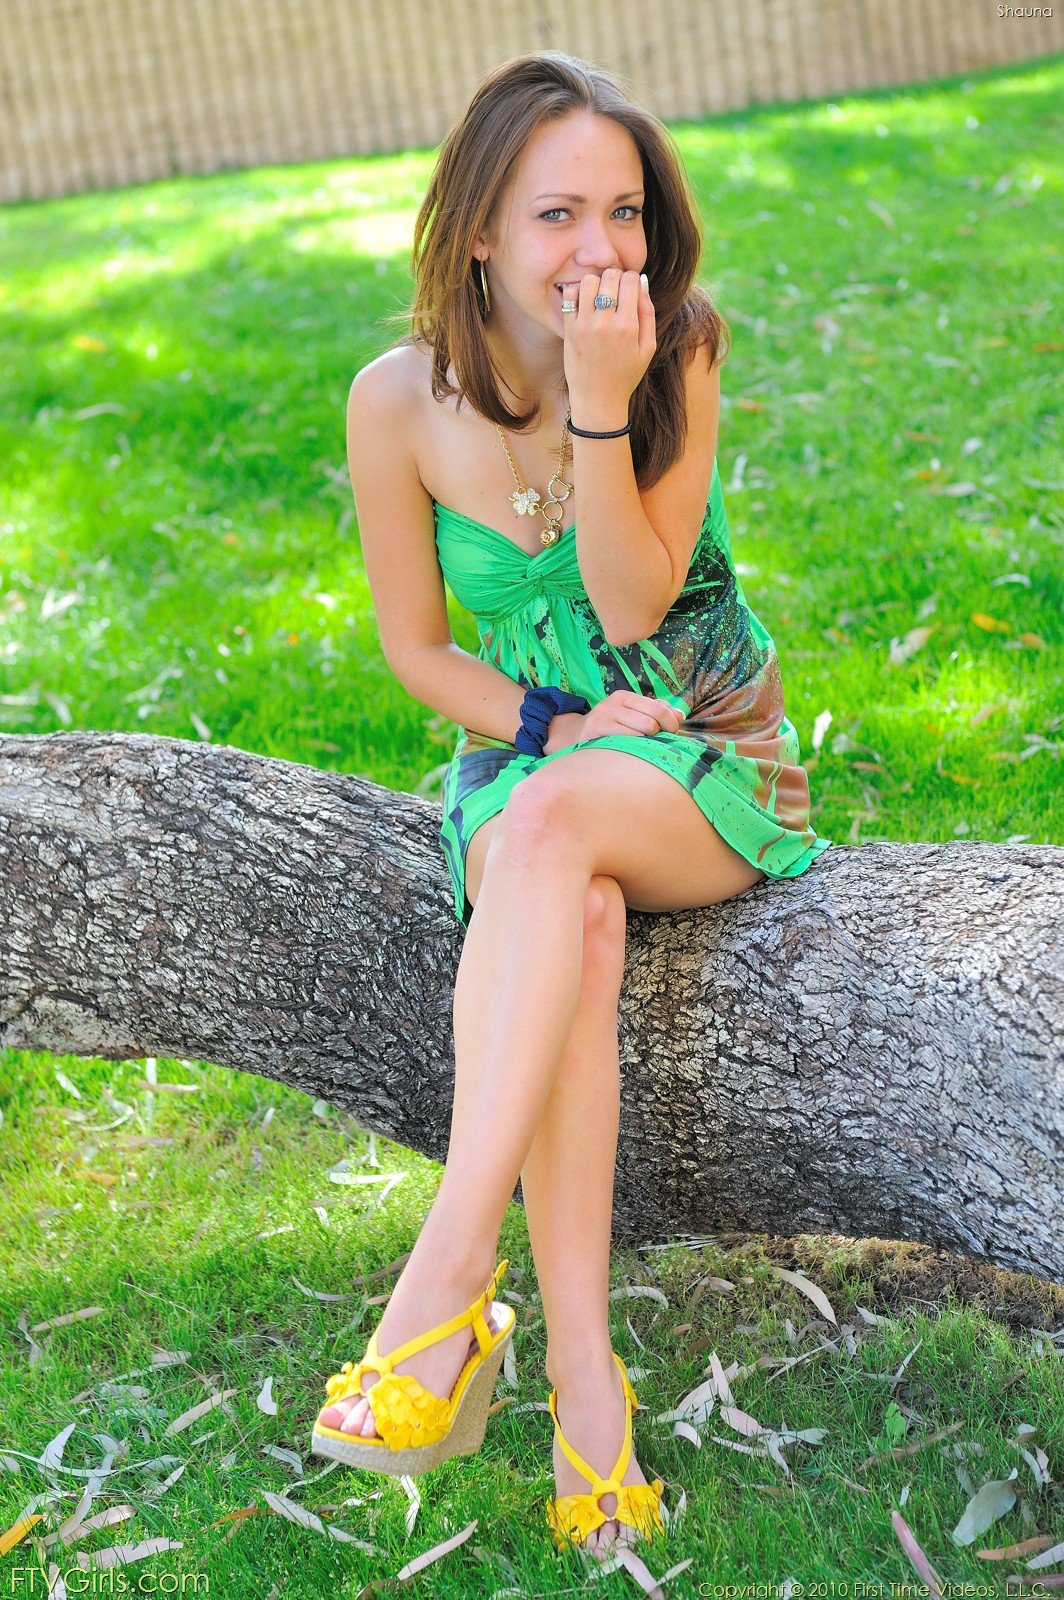 Brown-haired chick in a colorful outfit playing with her